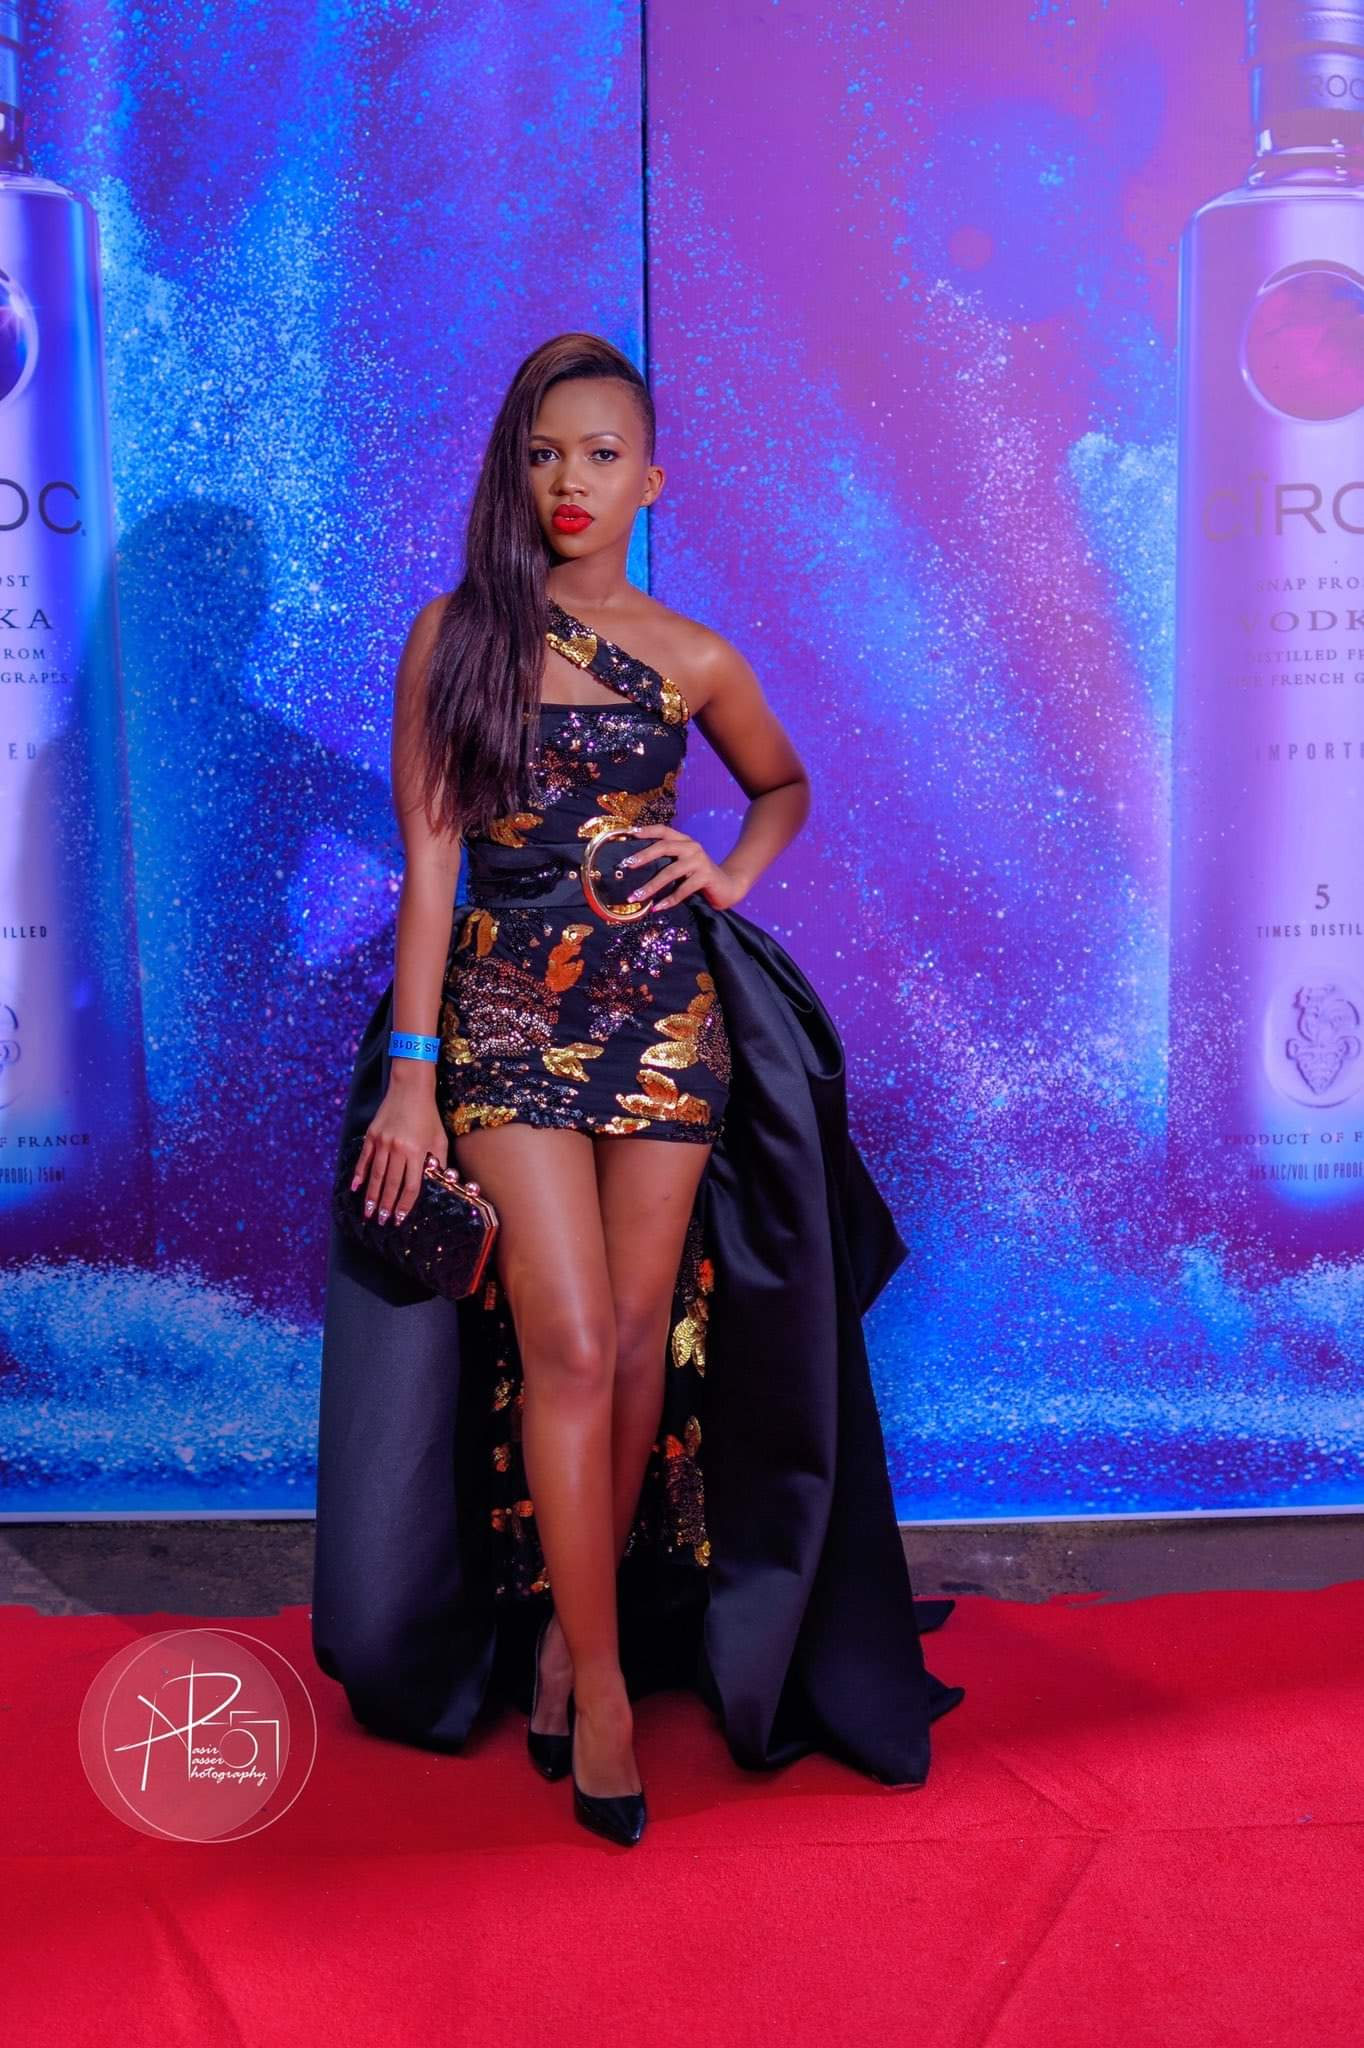 NBS eyes Sheilah Gashumba after being fired from NTV